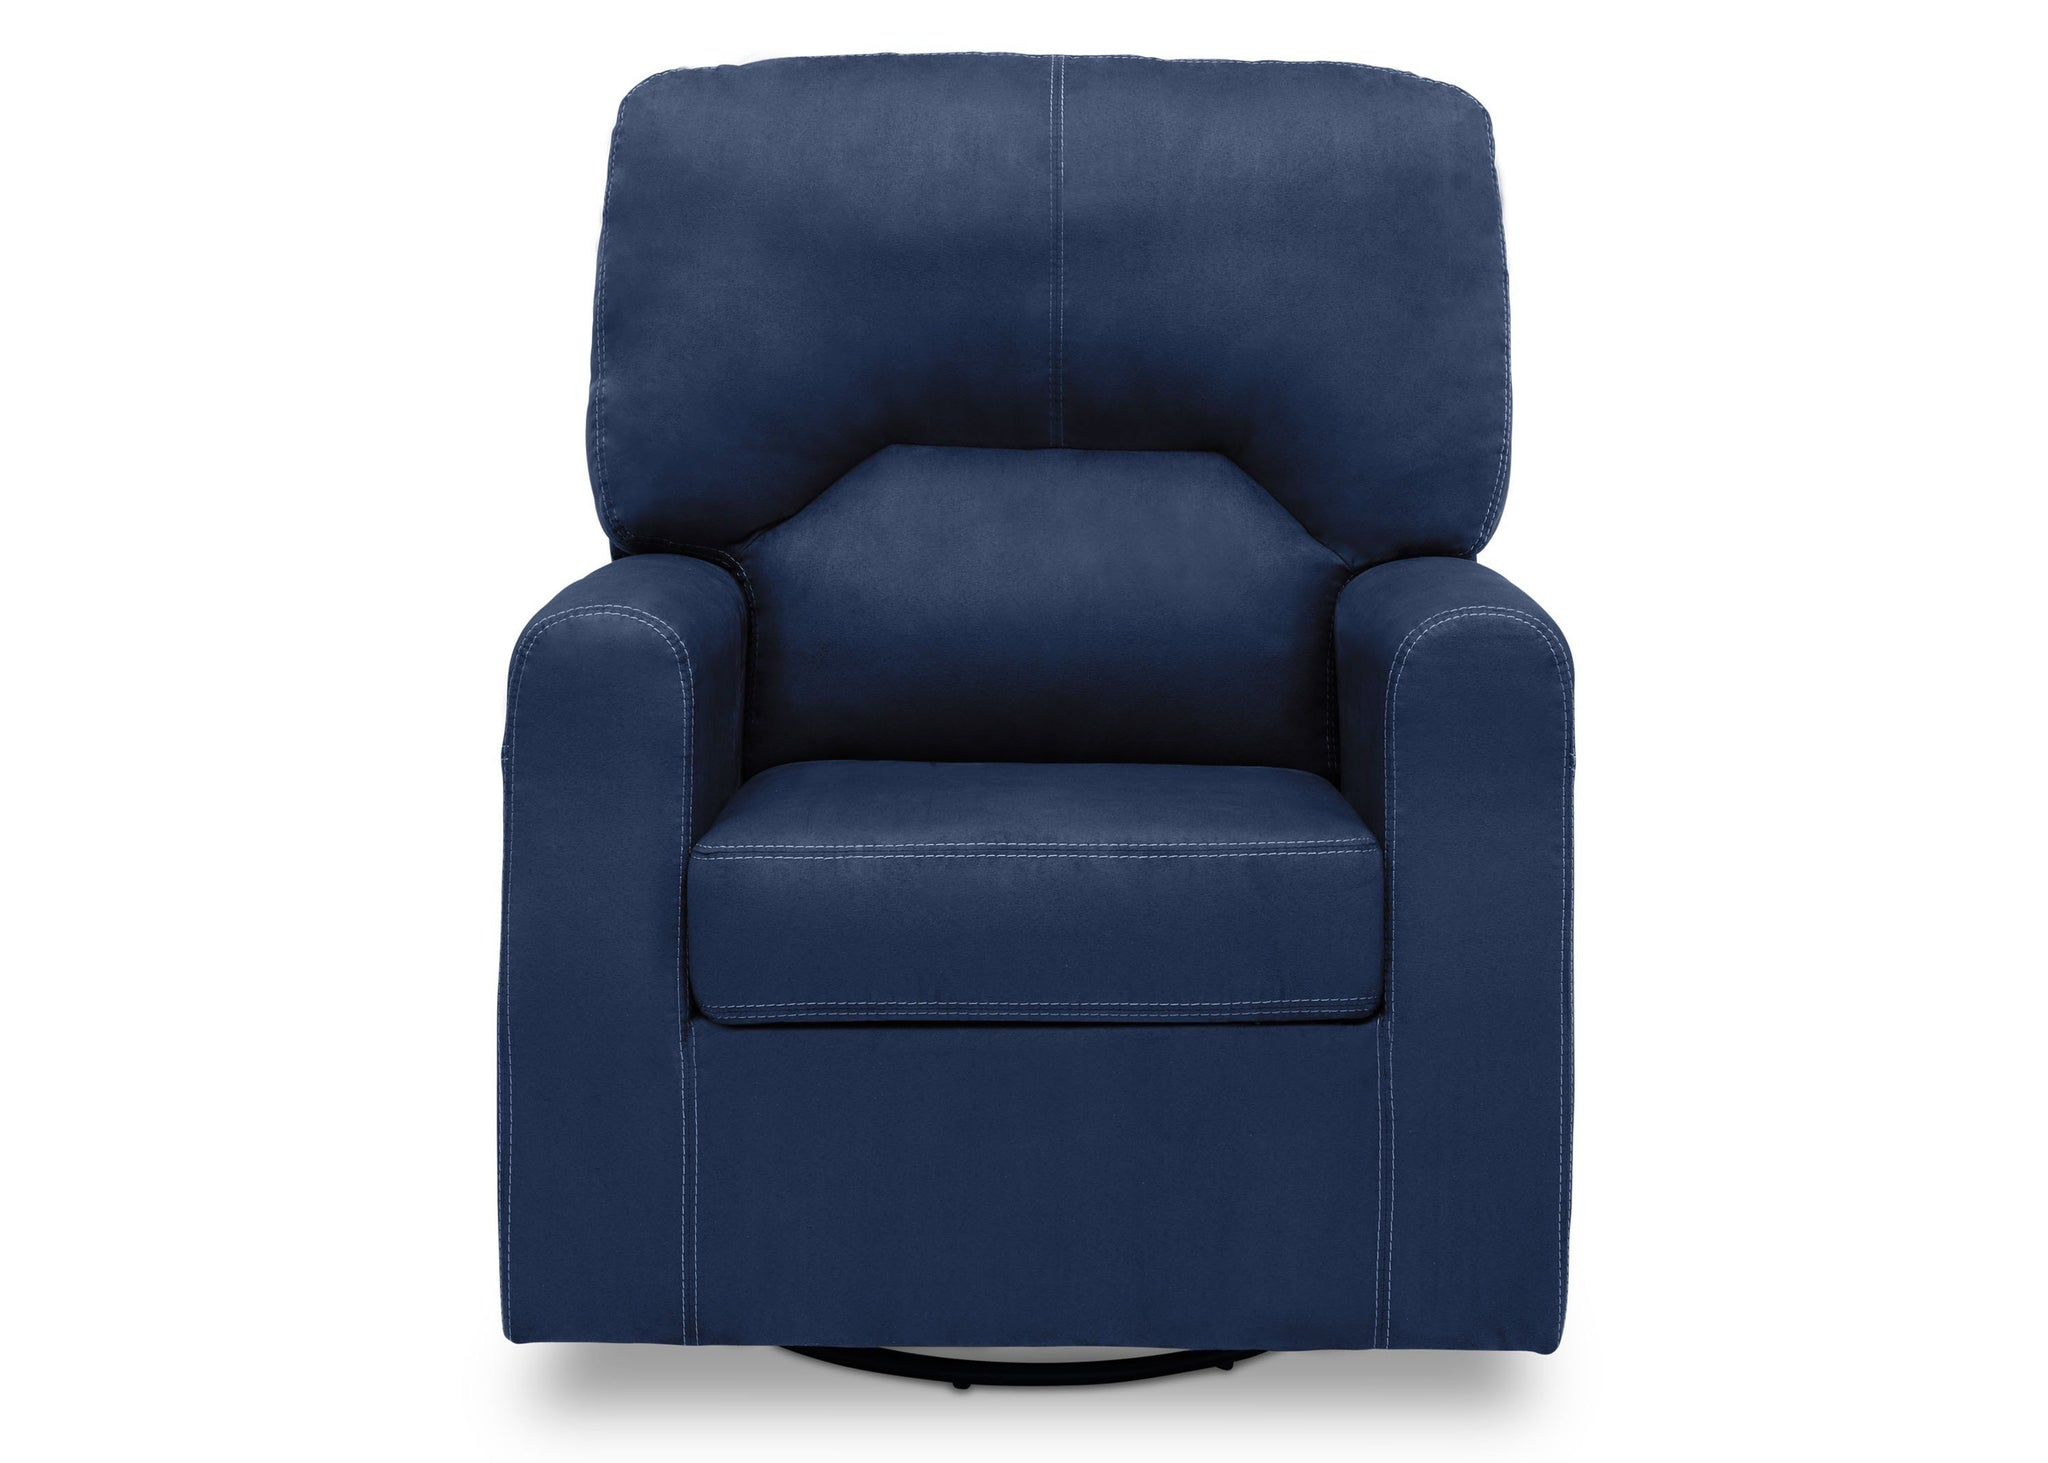 Delta Children Navy (467) Marshall Nursery Glider Swivel Rocker Chair, front view, c2c